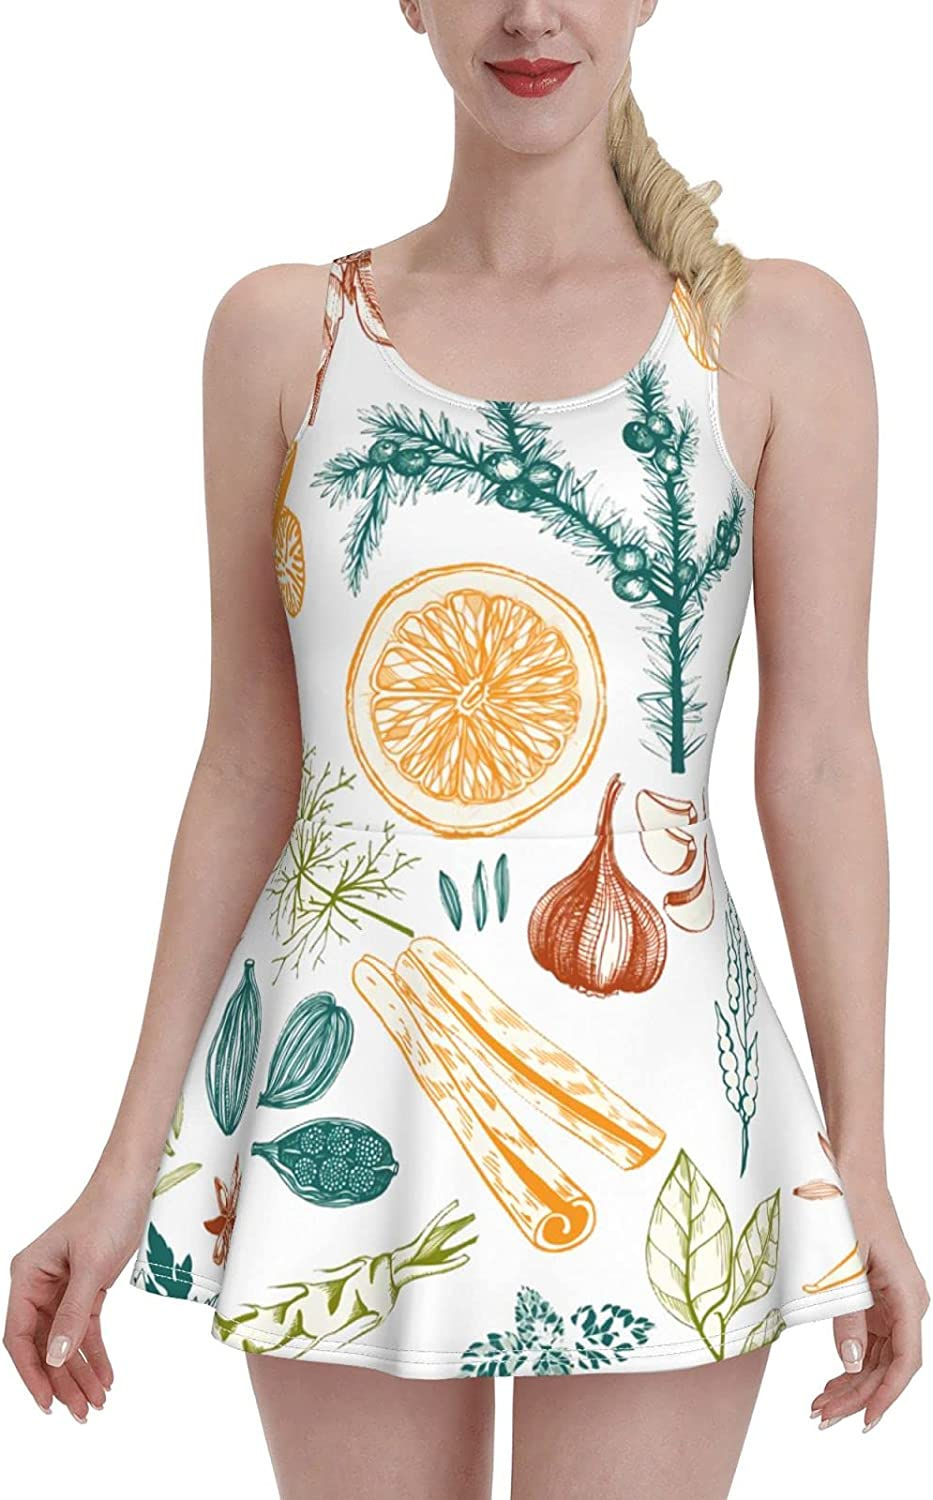 It is very popular Rich Quantity limited Variety of Fruits Ladies Ruffled Swimsuit Ad One-Piece with